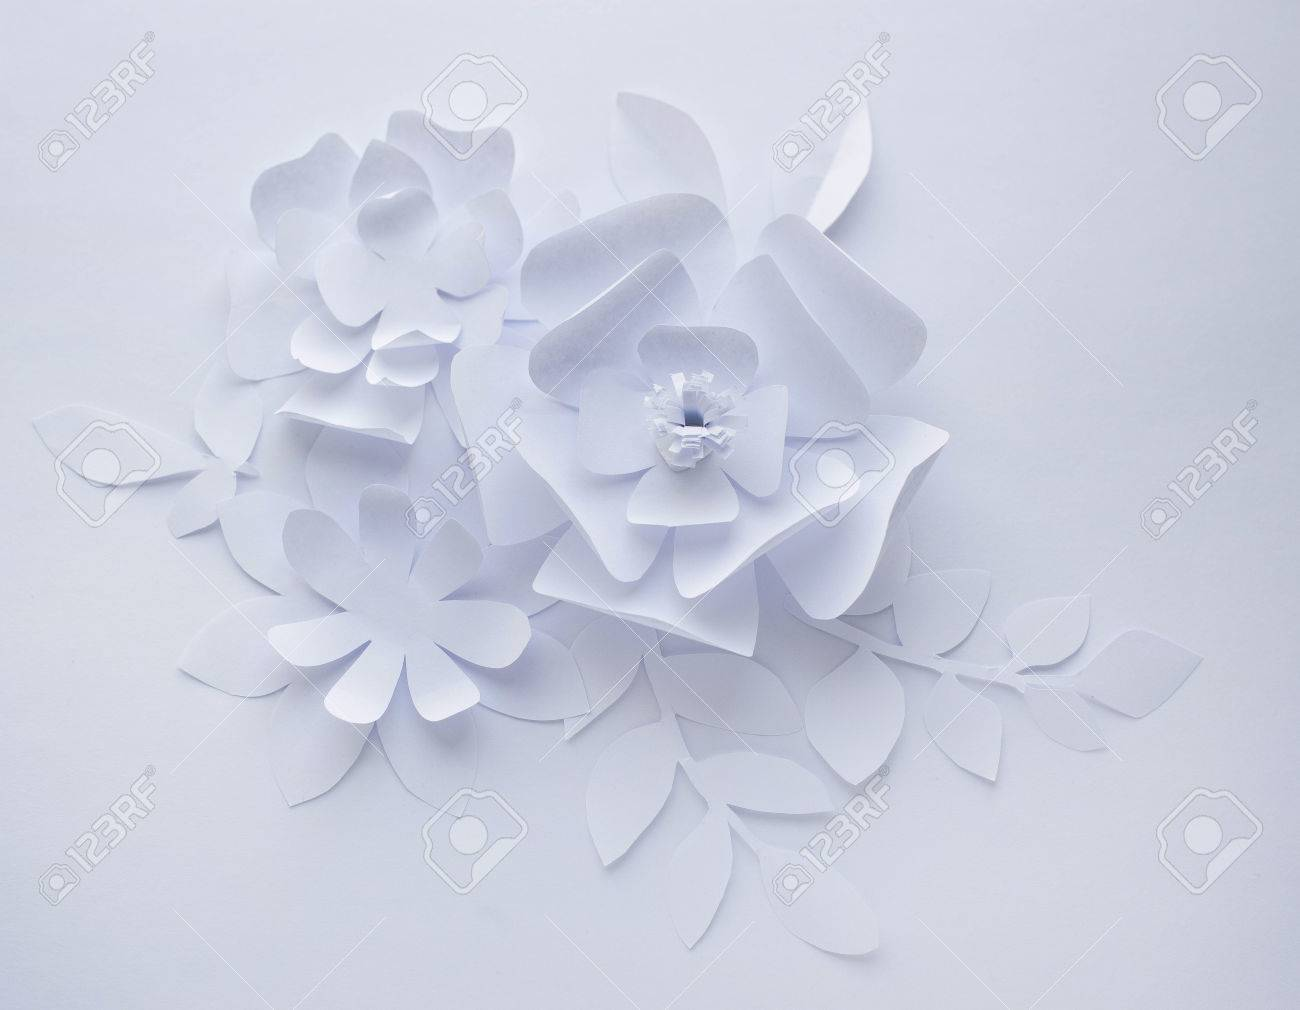 Paper Flower On White Background Paper Craft Flowers Paper Stock Photo Picture And Royalty Free Image Image 74415868